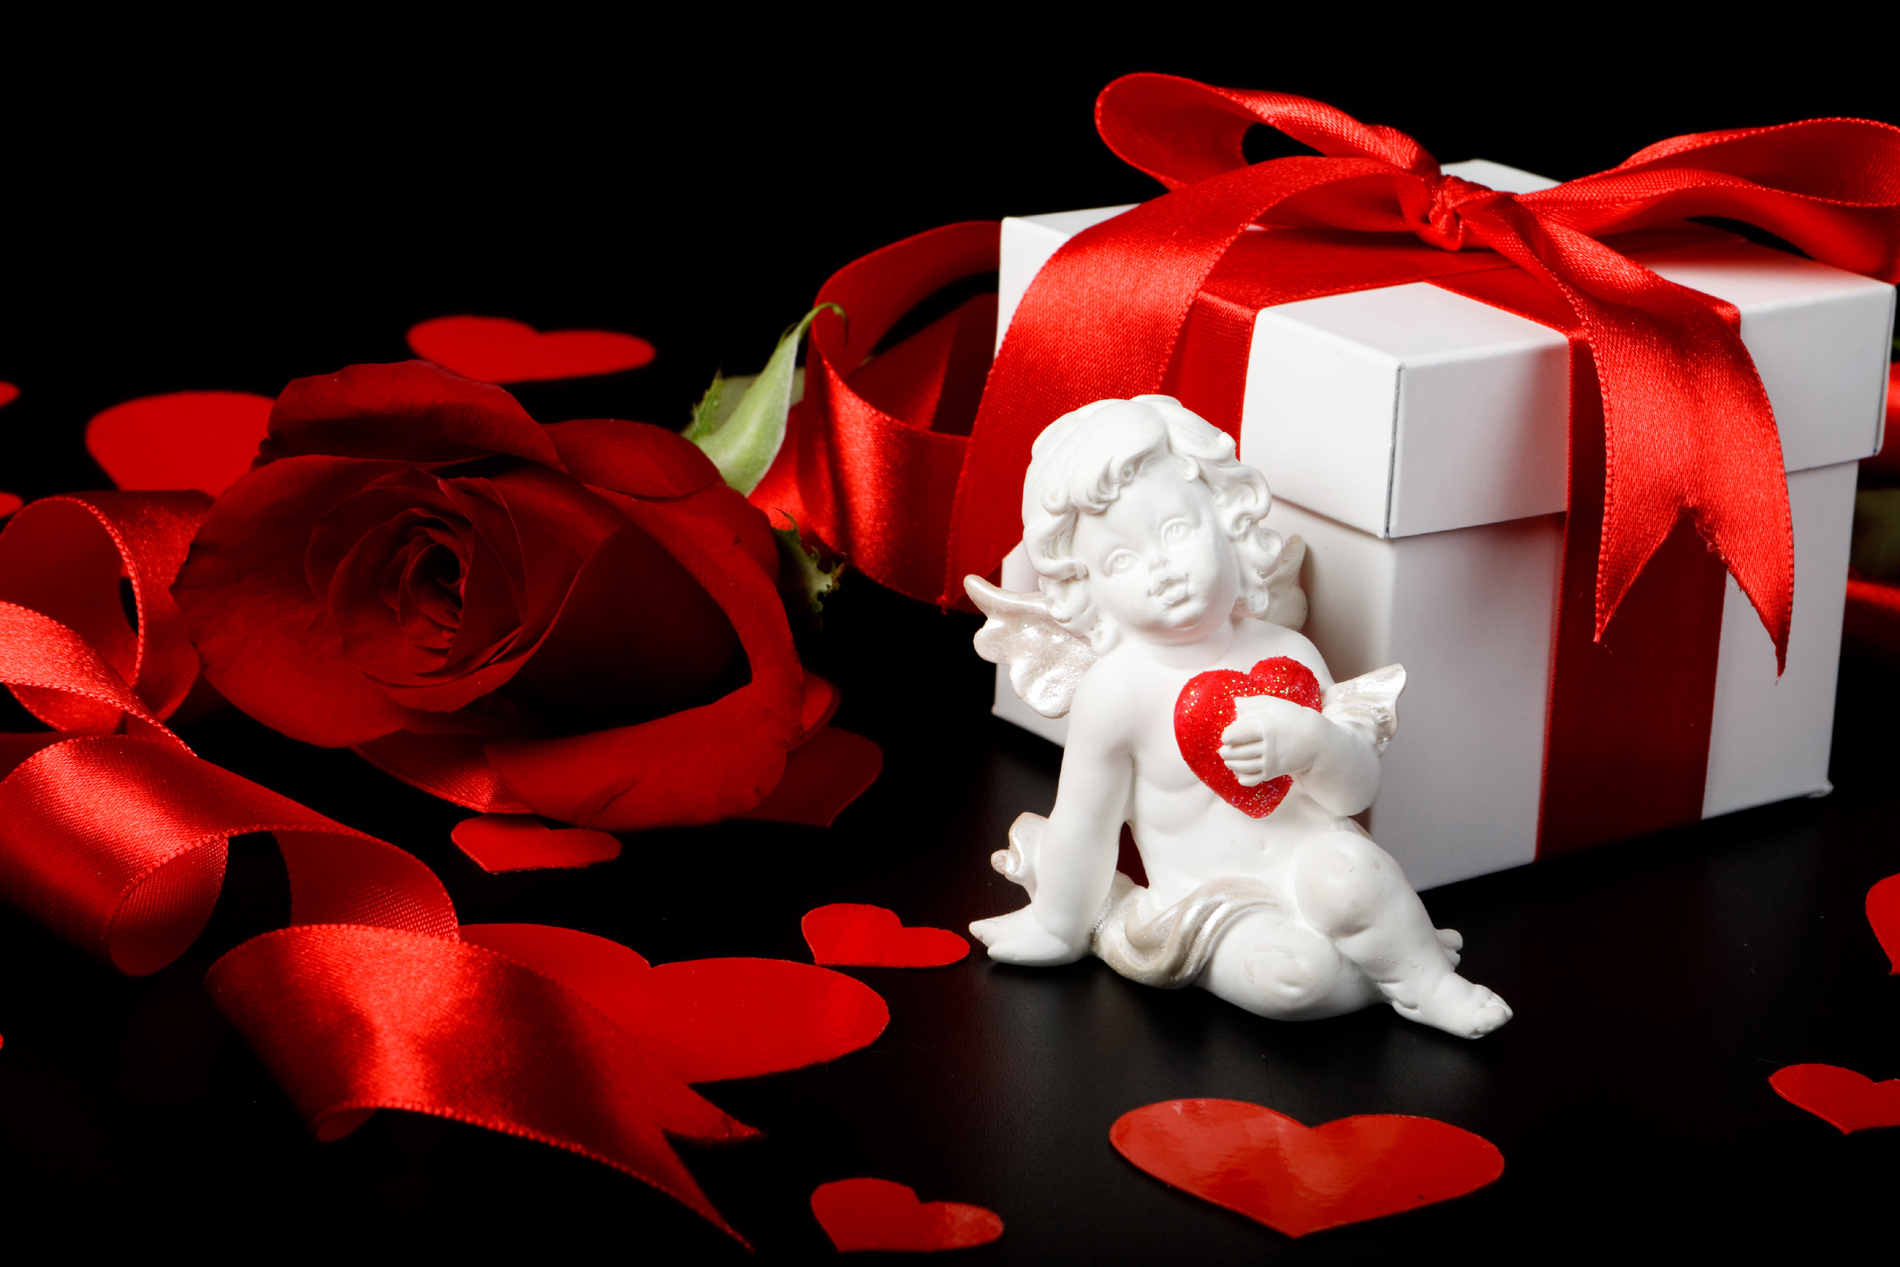 Red rose flower and gift box 52830